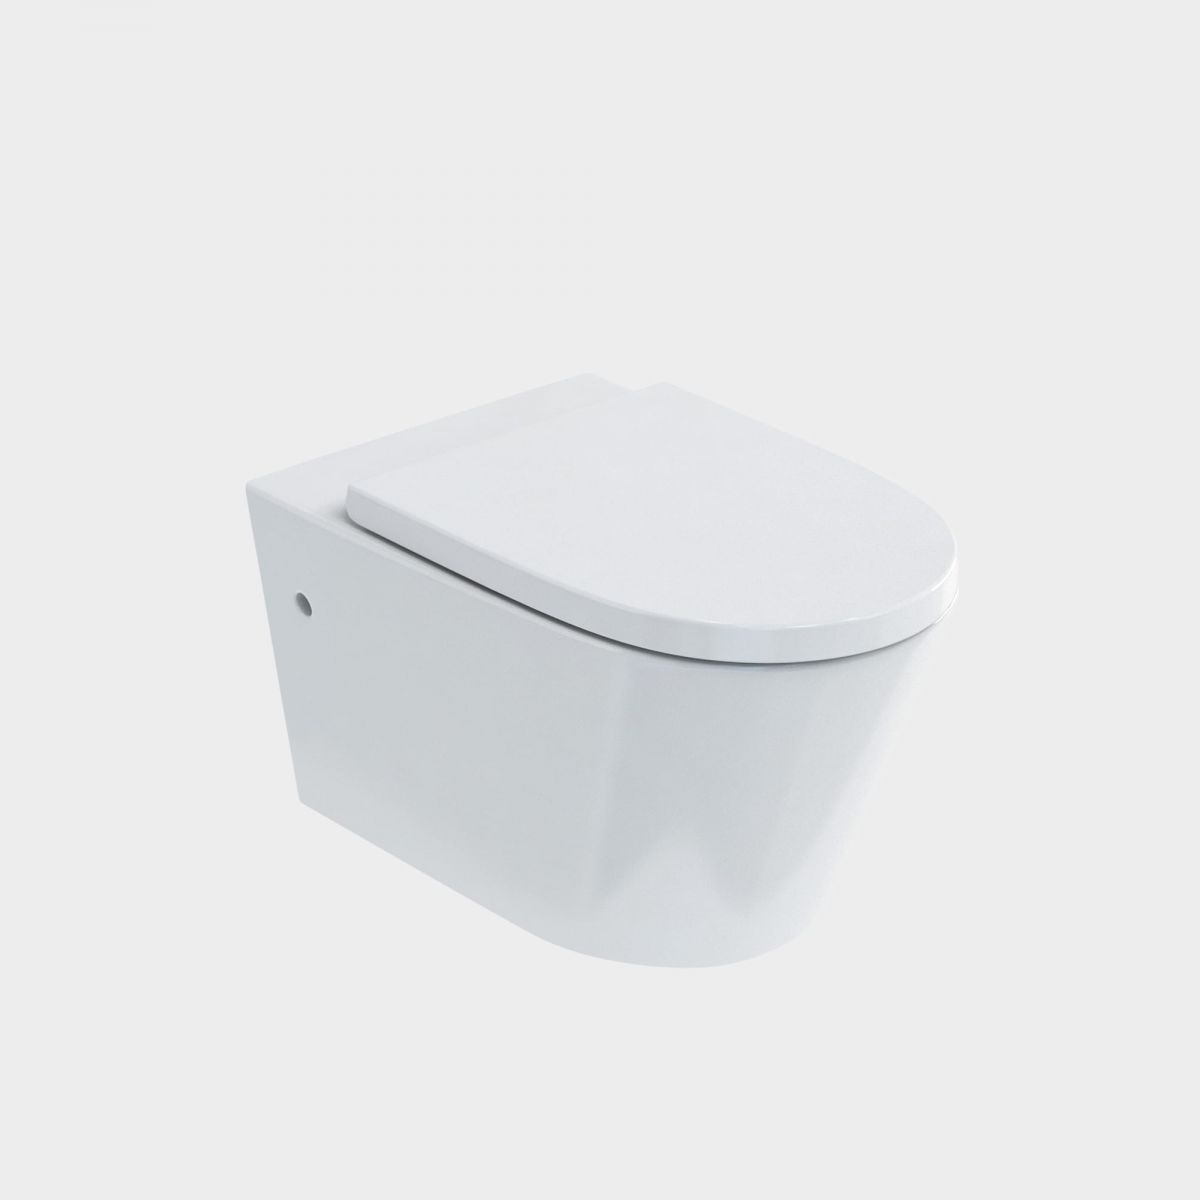 Sphere Easy Height Rimless Wall-Hung Toilet